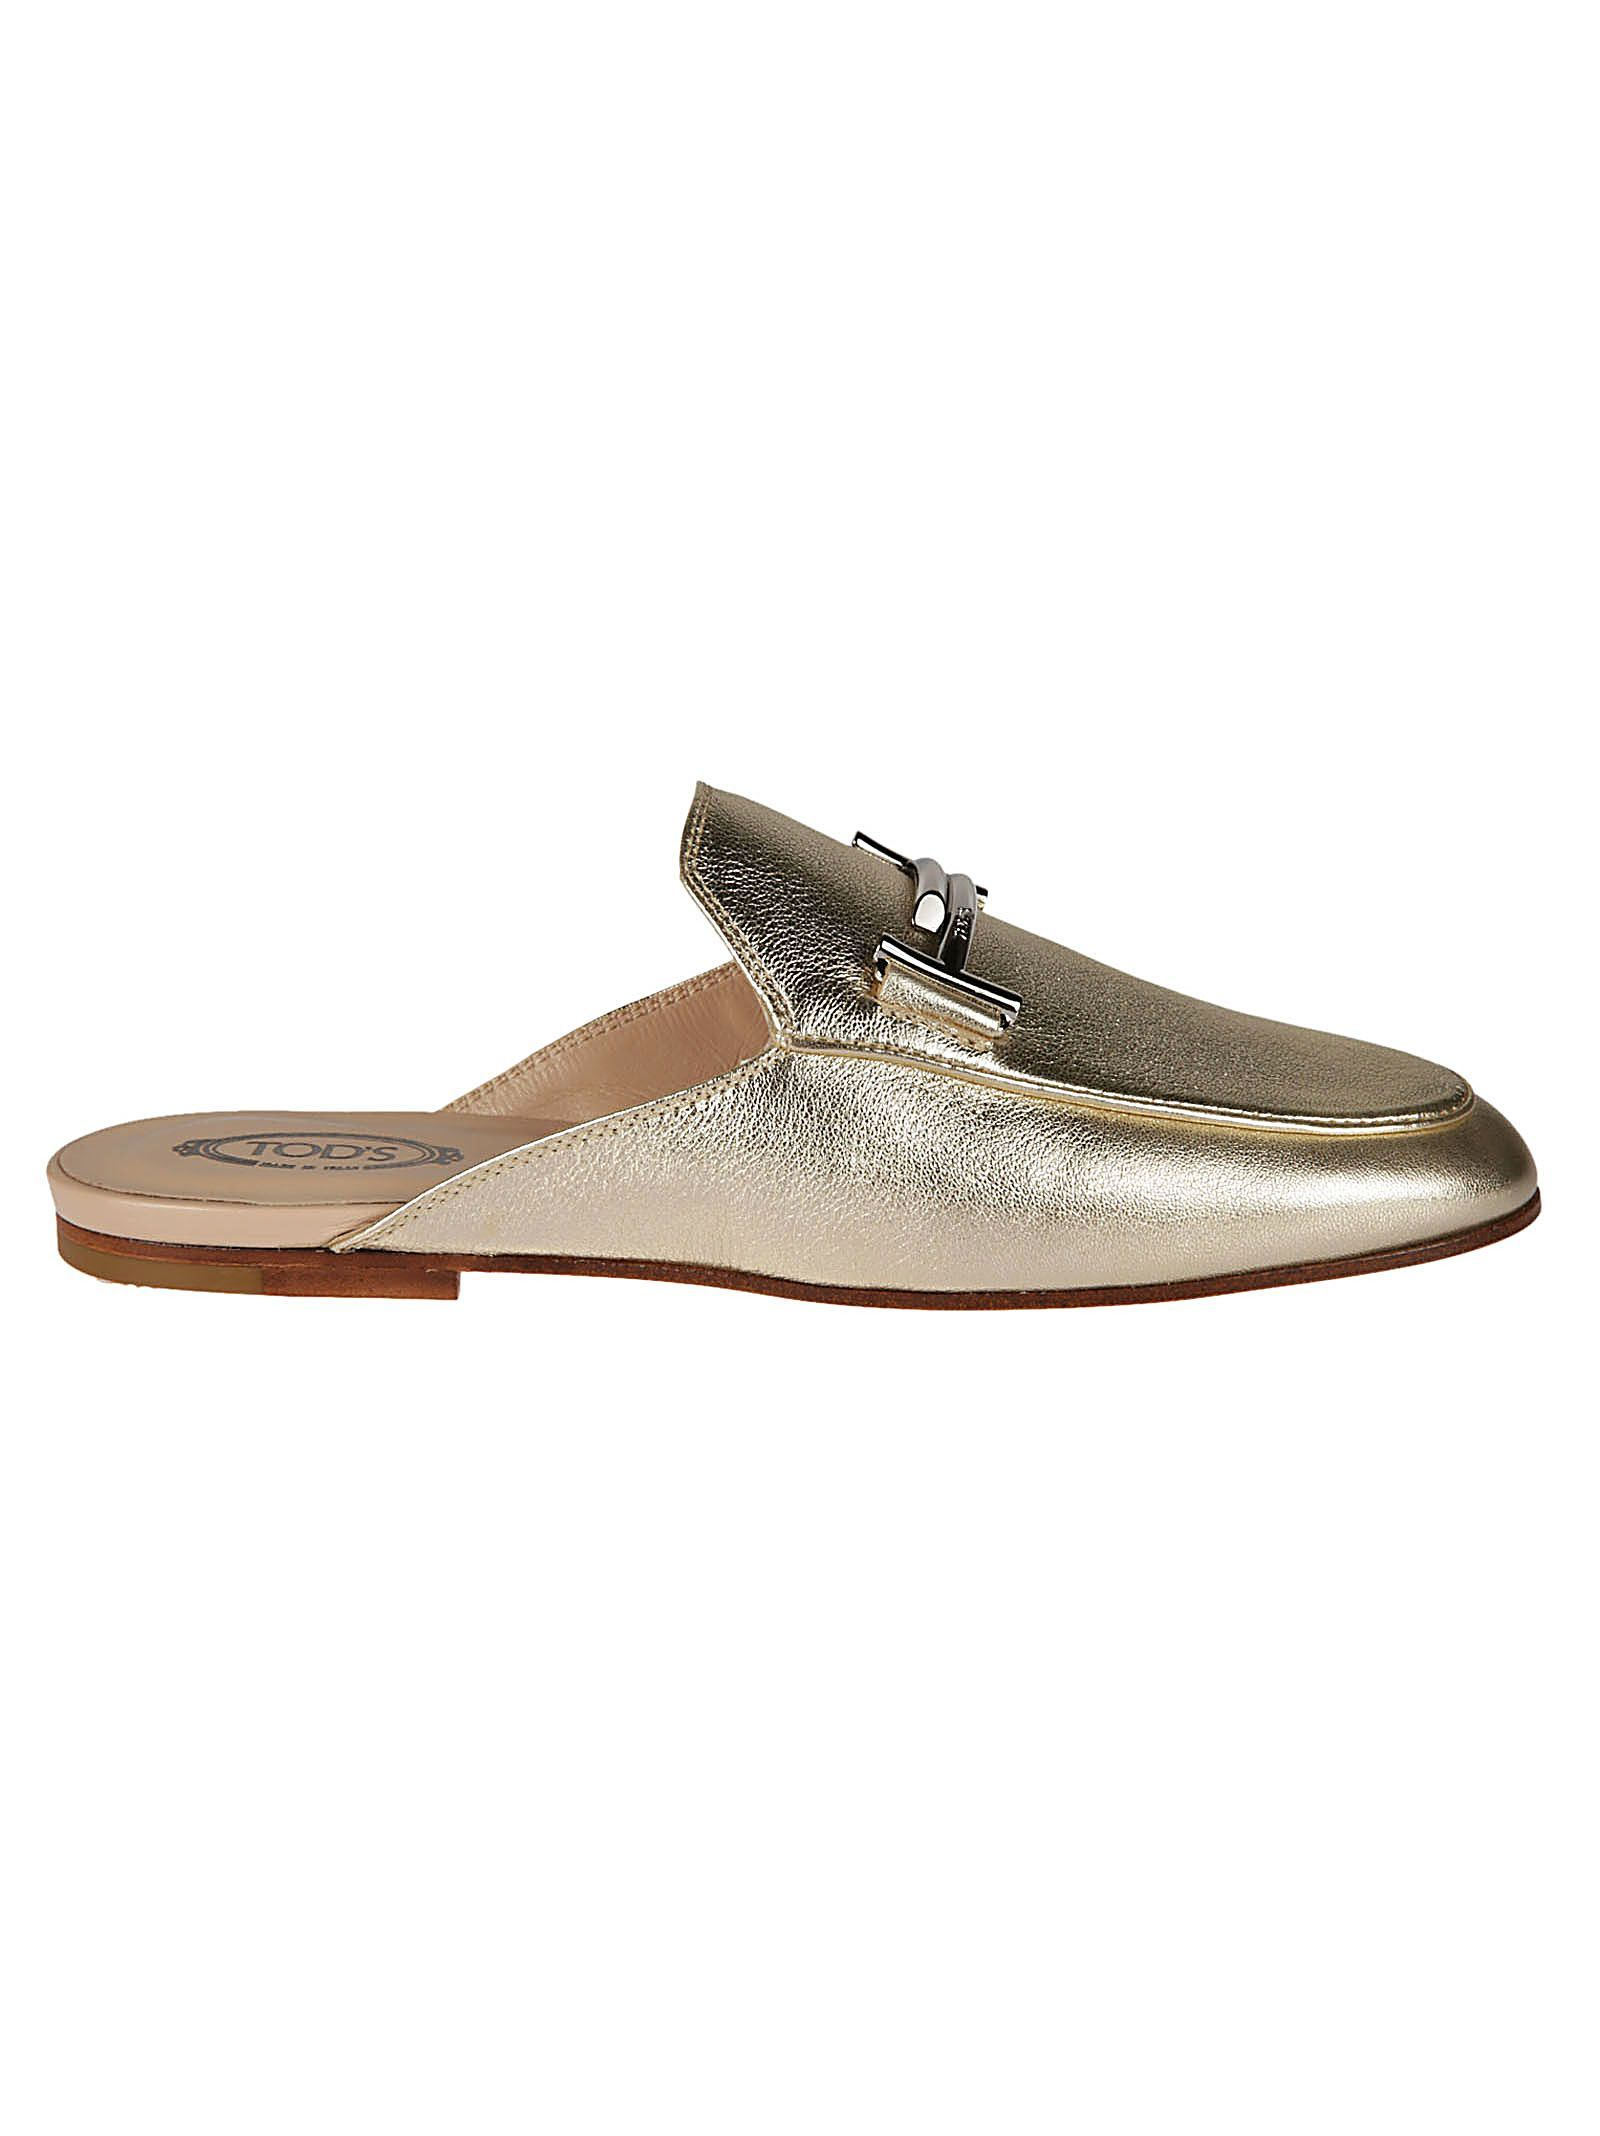 Tod's Double T Flat Mules Shop For Online Cheap Collections jsRDfOUxeE